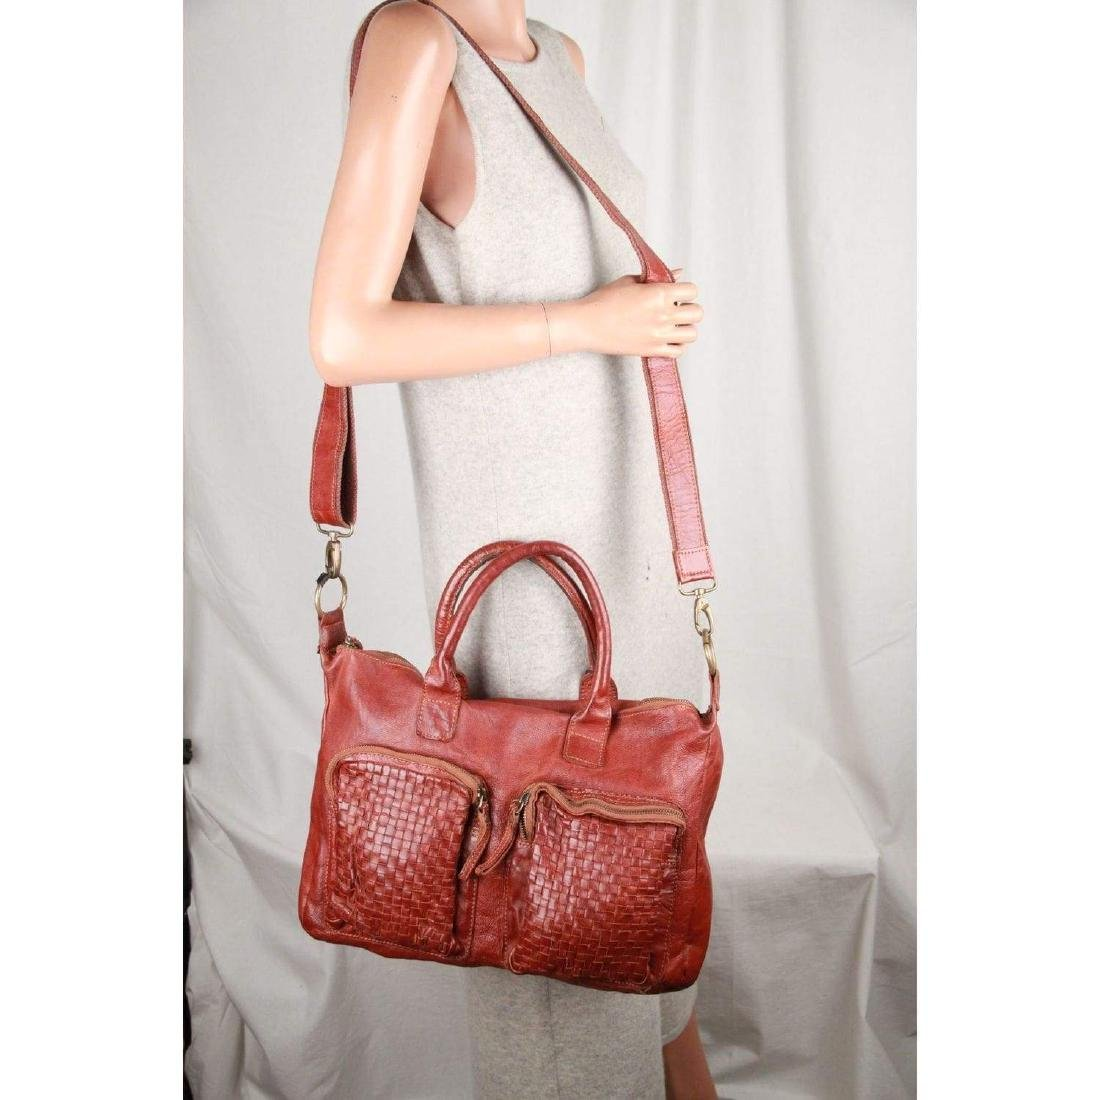 COWBOYSBAG Brown Leather THE BAG Satchel with WOVEN - 8